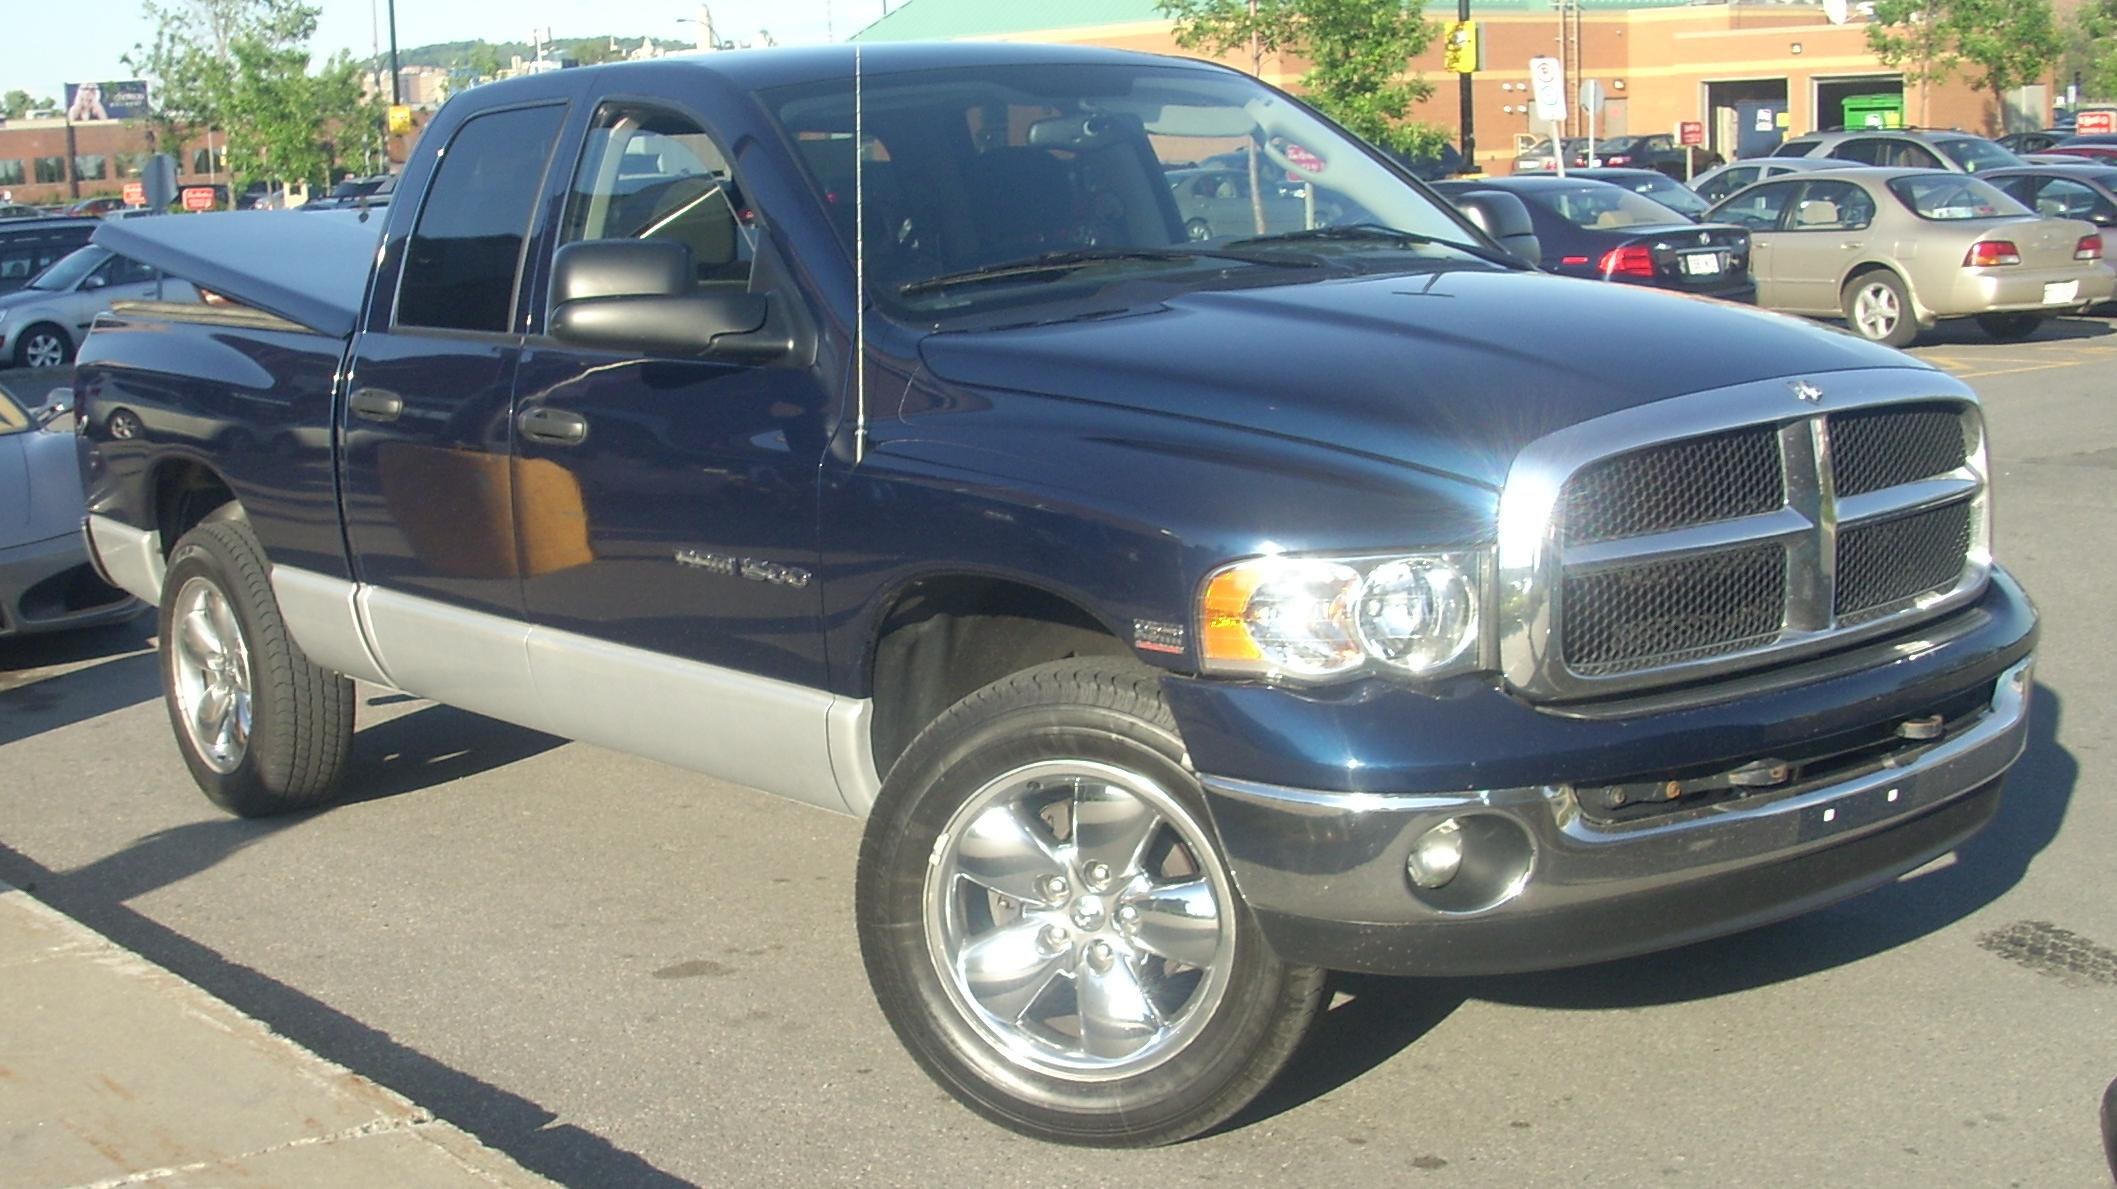 file 39 04 39 05 dodge ram 1500 crew cab jpg wikimedia commons. Black Bedroom Furniture Sets. Home Design Ideas